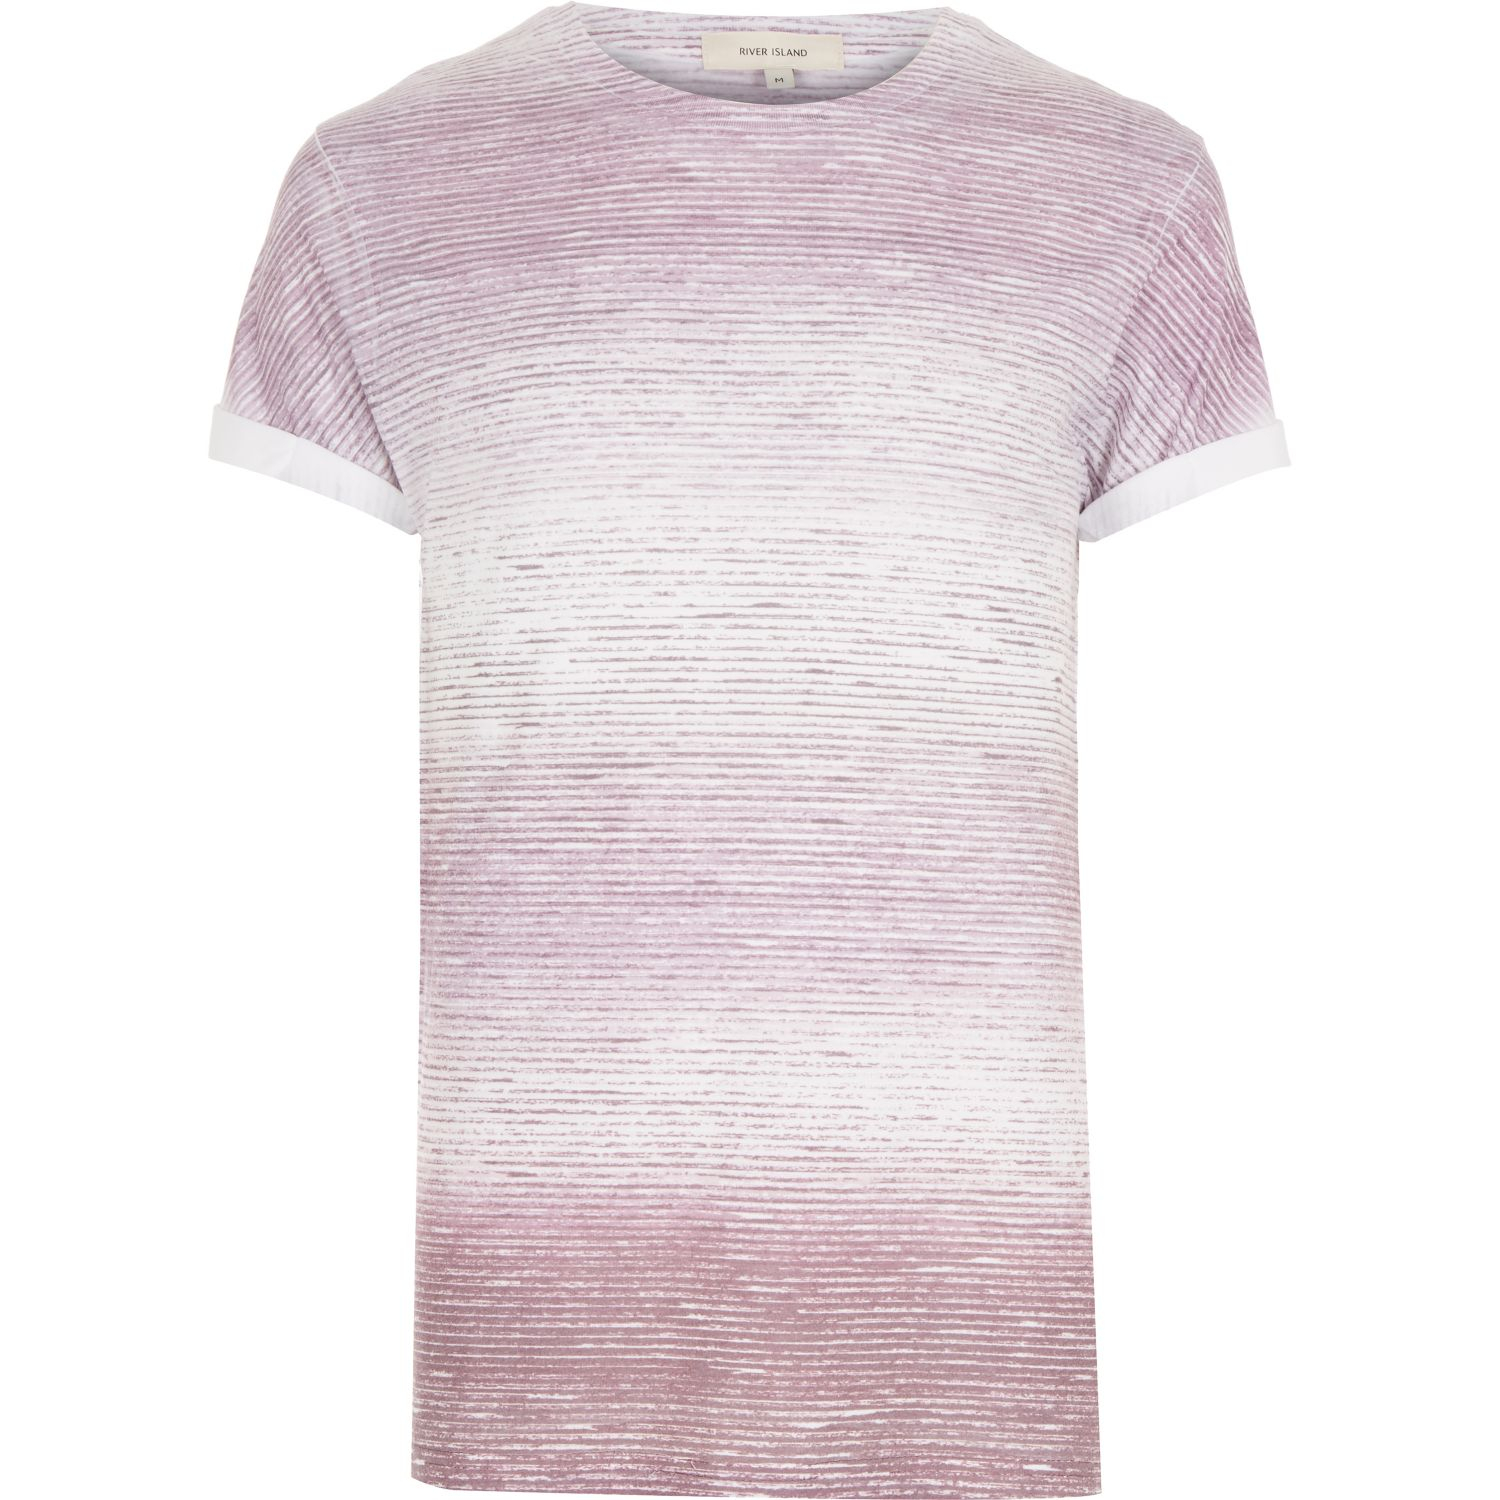 River island white and red faded stripe t shirt in purple for Faded color t shirts